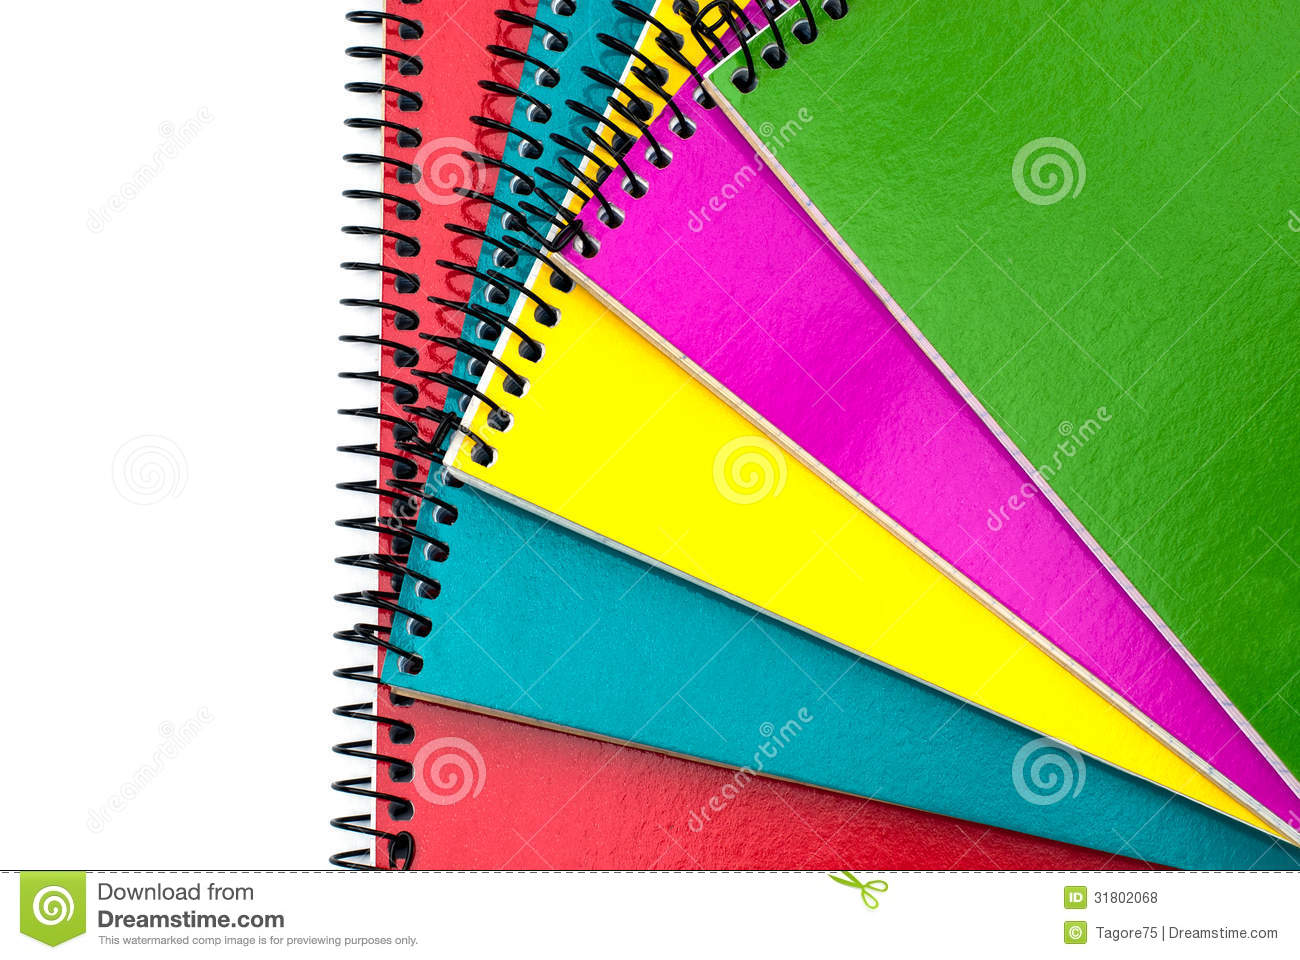 how to fix spiral notebooks